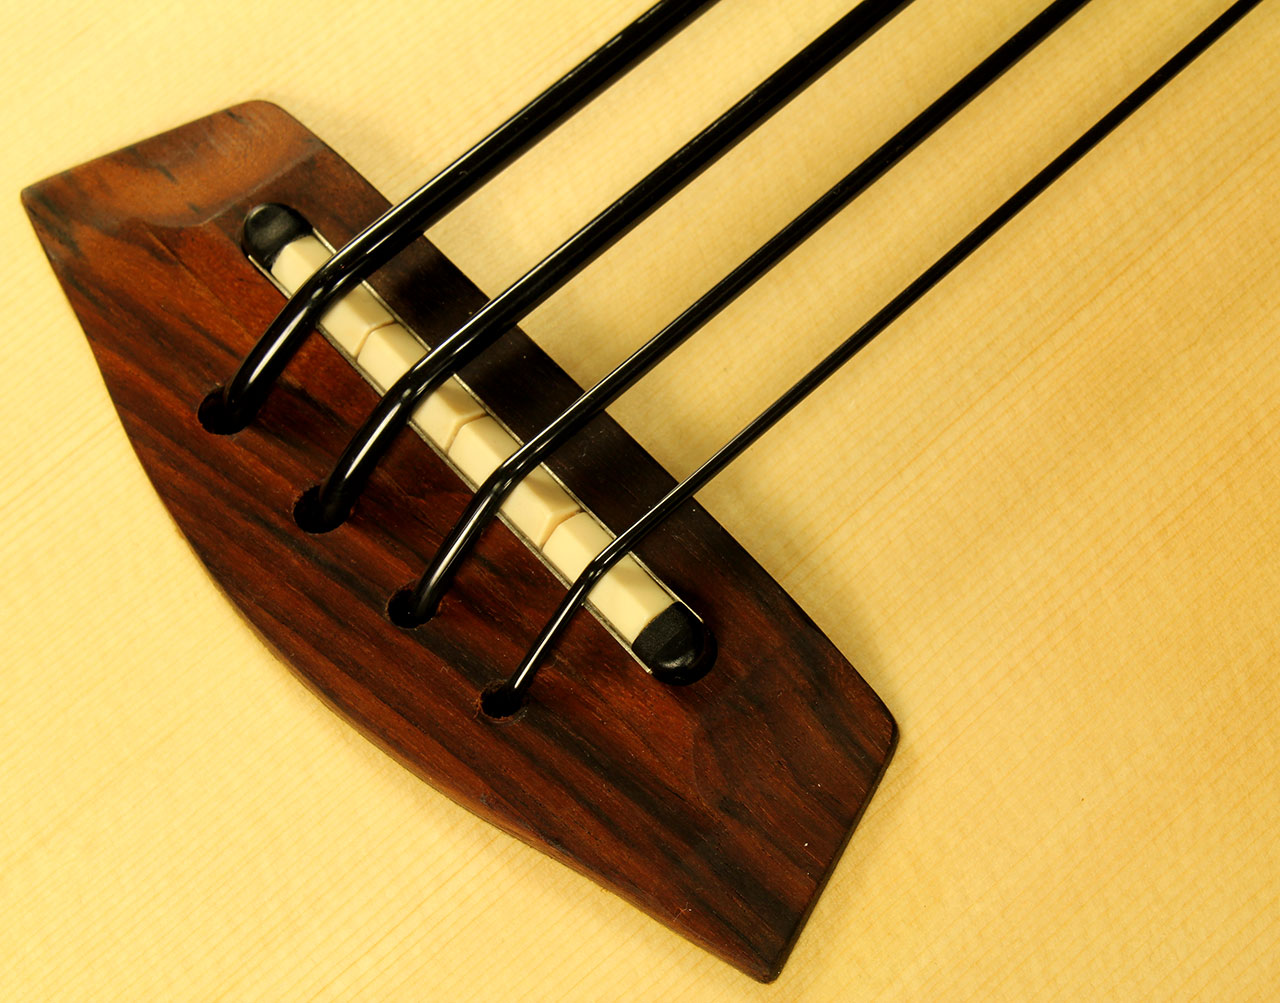 kala-u-bass-spruce-bridge-1